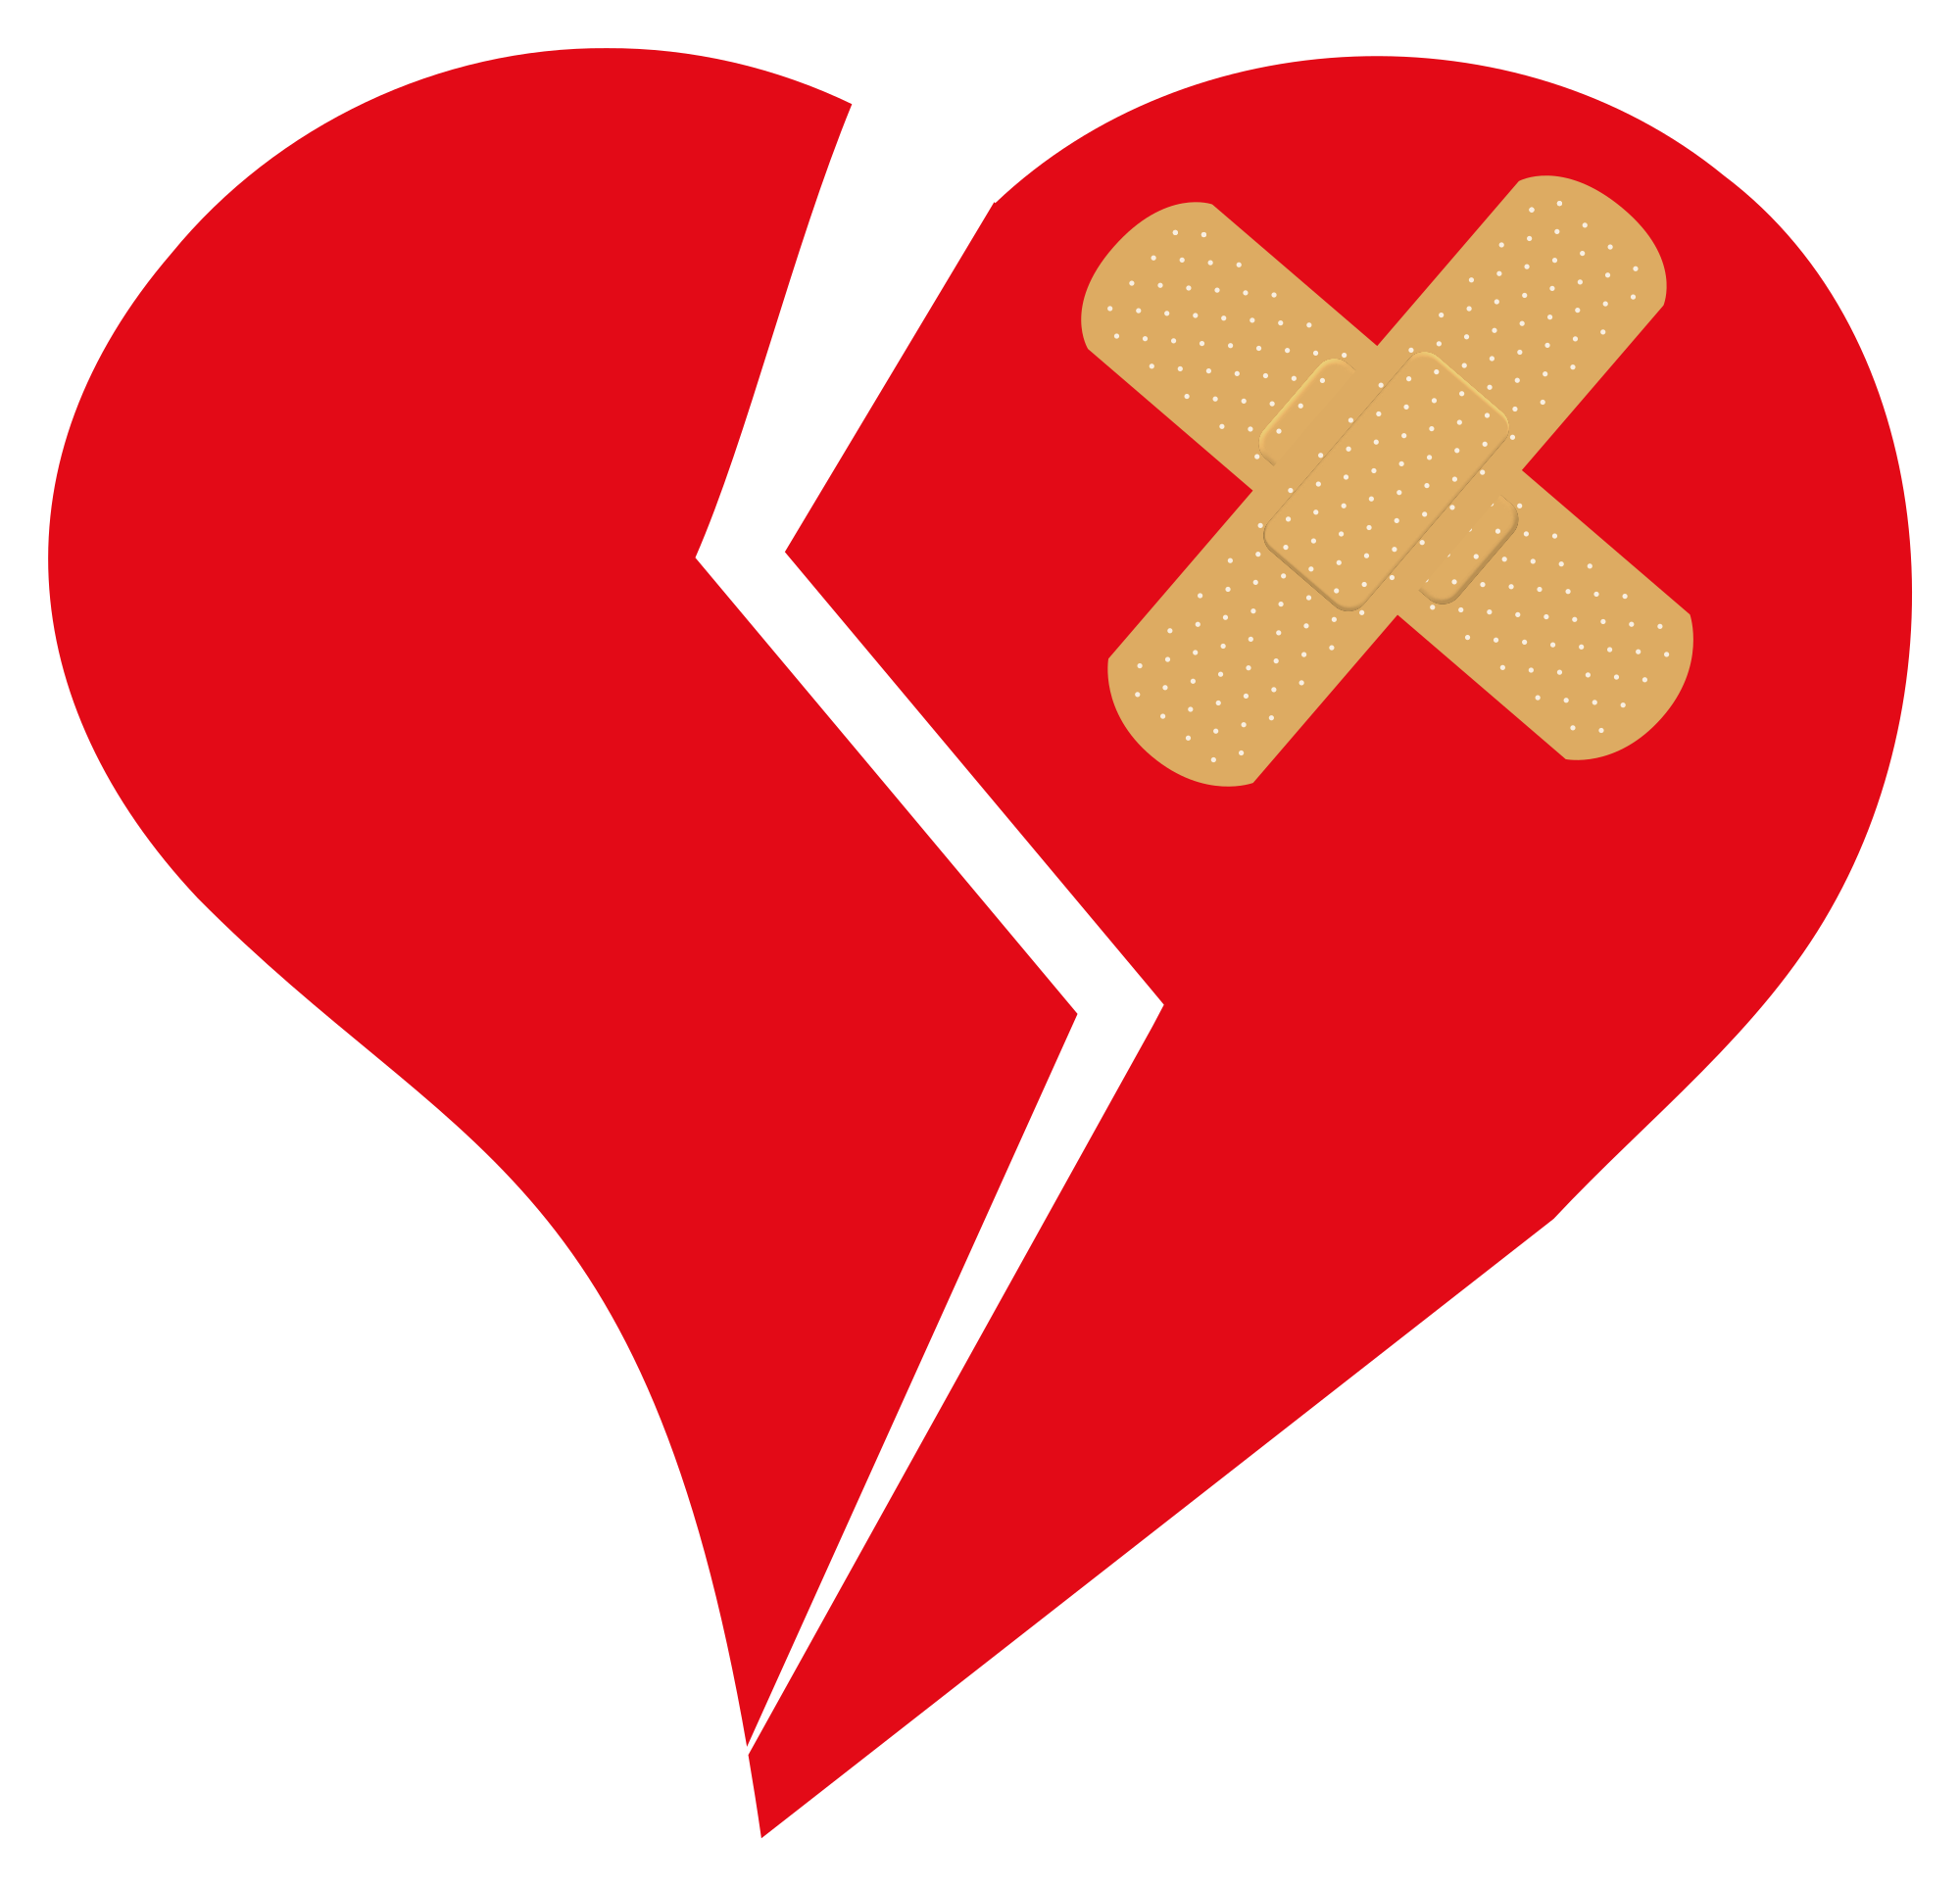 Heart broken clipart banner royalty free library What to do When your Friend is Heartbroken – The Voyager banner royalty free library